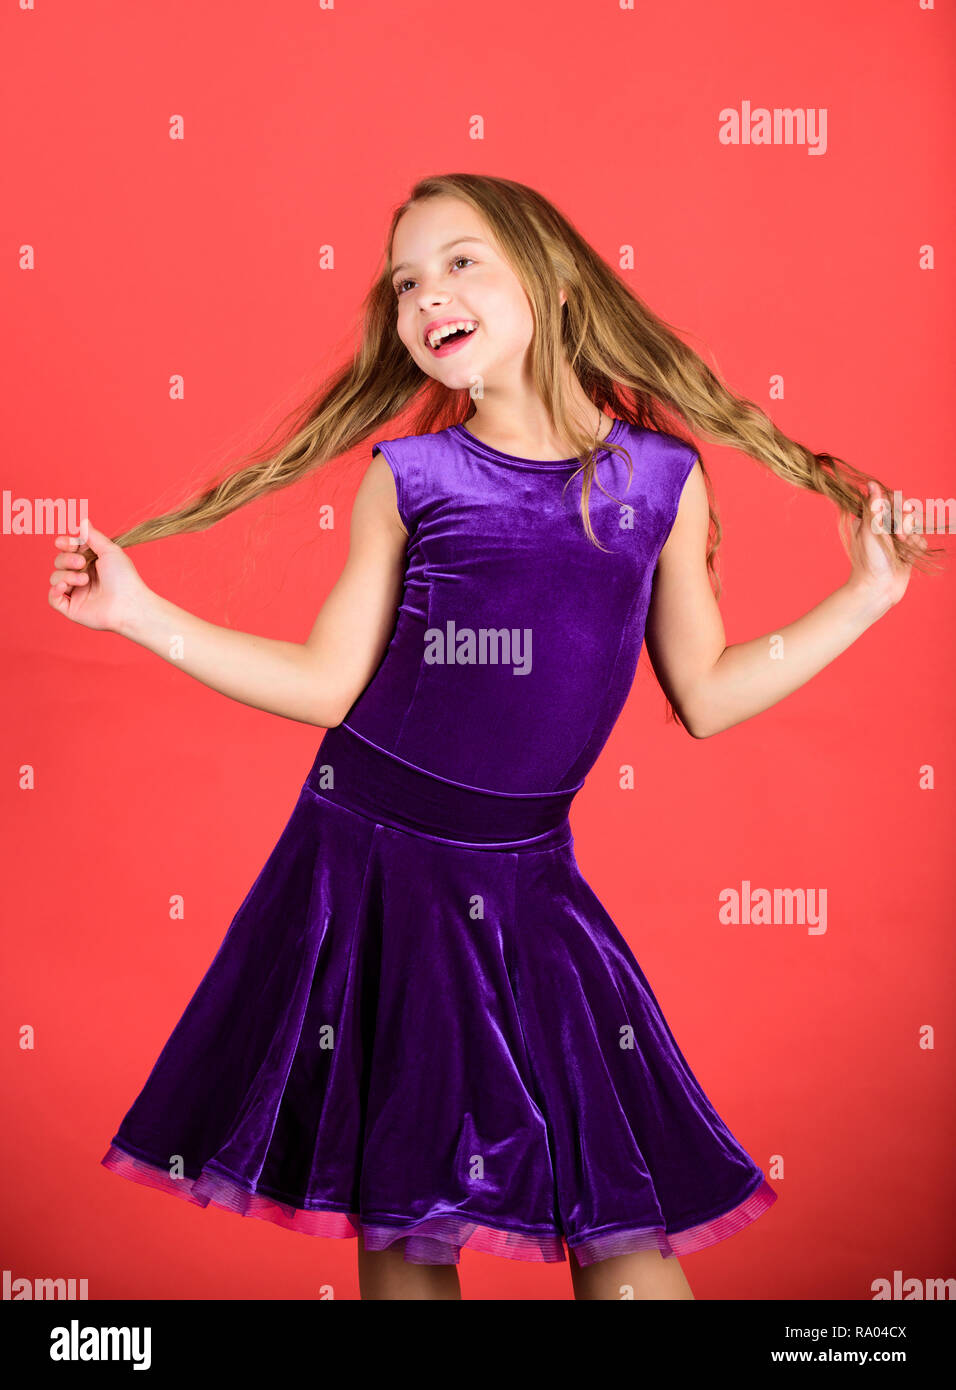 Hairstyle for dancer. How to make tidy hairstyle for kid. Ballroom latin dance hairstyles. Kid girl with long hair wear dress on red background. Things you need know about ballroom dance hairstyle. - Stock Image